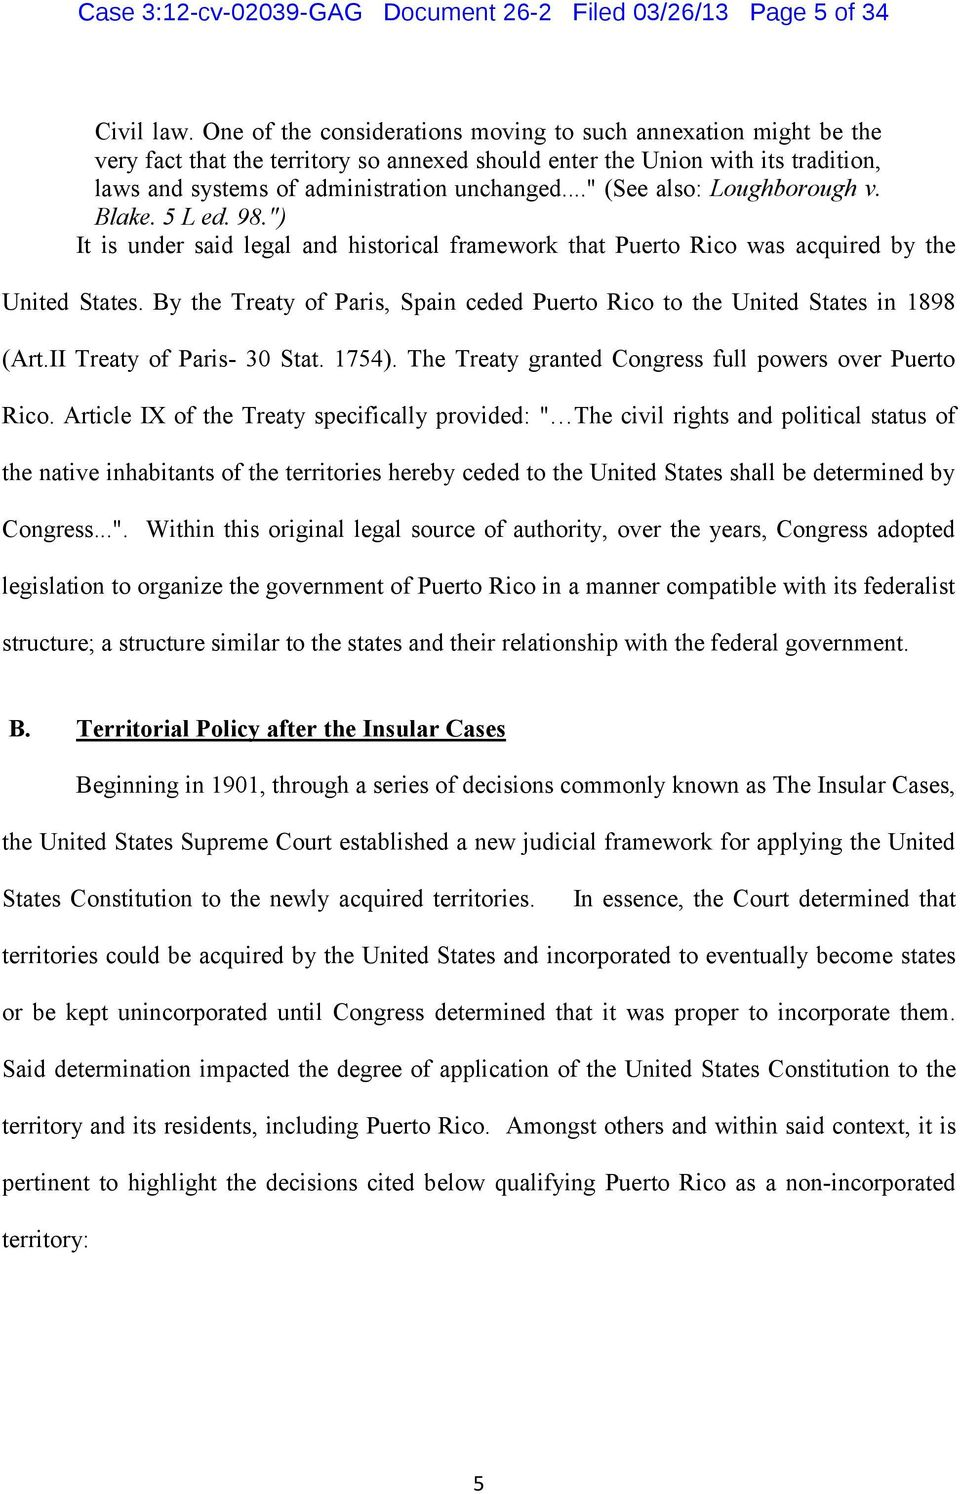 ".."" (See also: Loughborough v. Blake. 5 L ed. 98."") It is under said legal and historical framework that Puerto Rico was acquired by the United States."